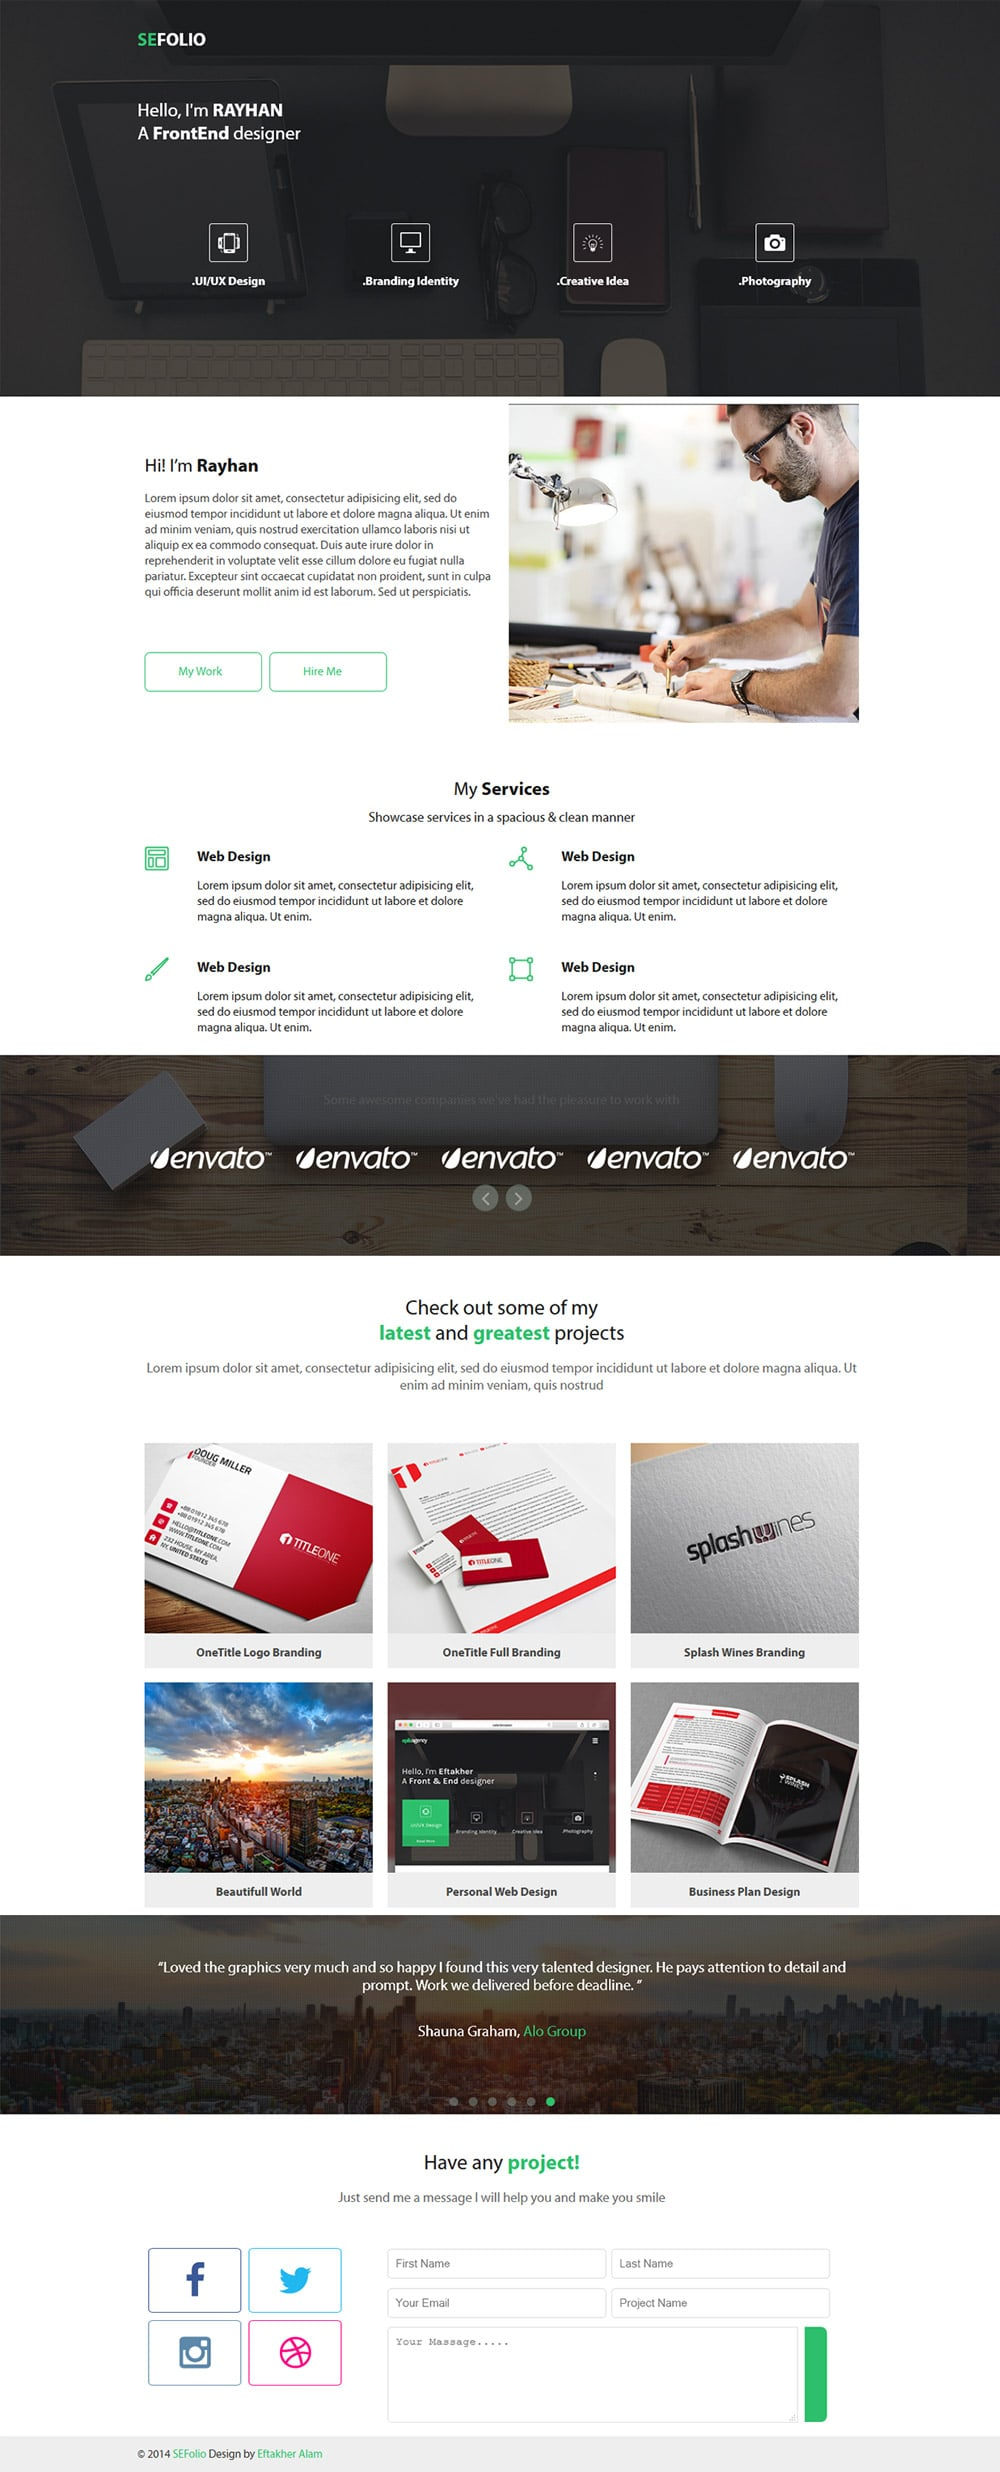 Free portfolio website templates psd css author sefolio free portfolio web template psd sefolio download pronofoot35fo Gallery